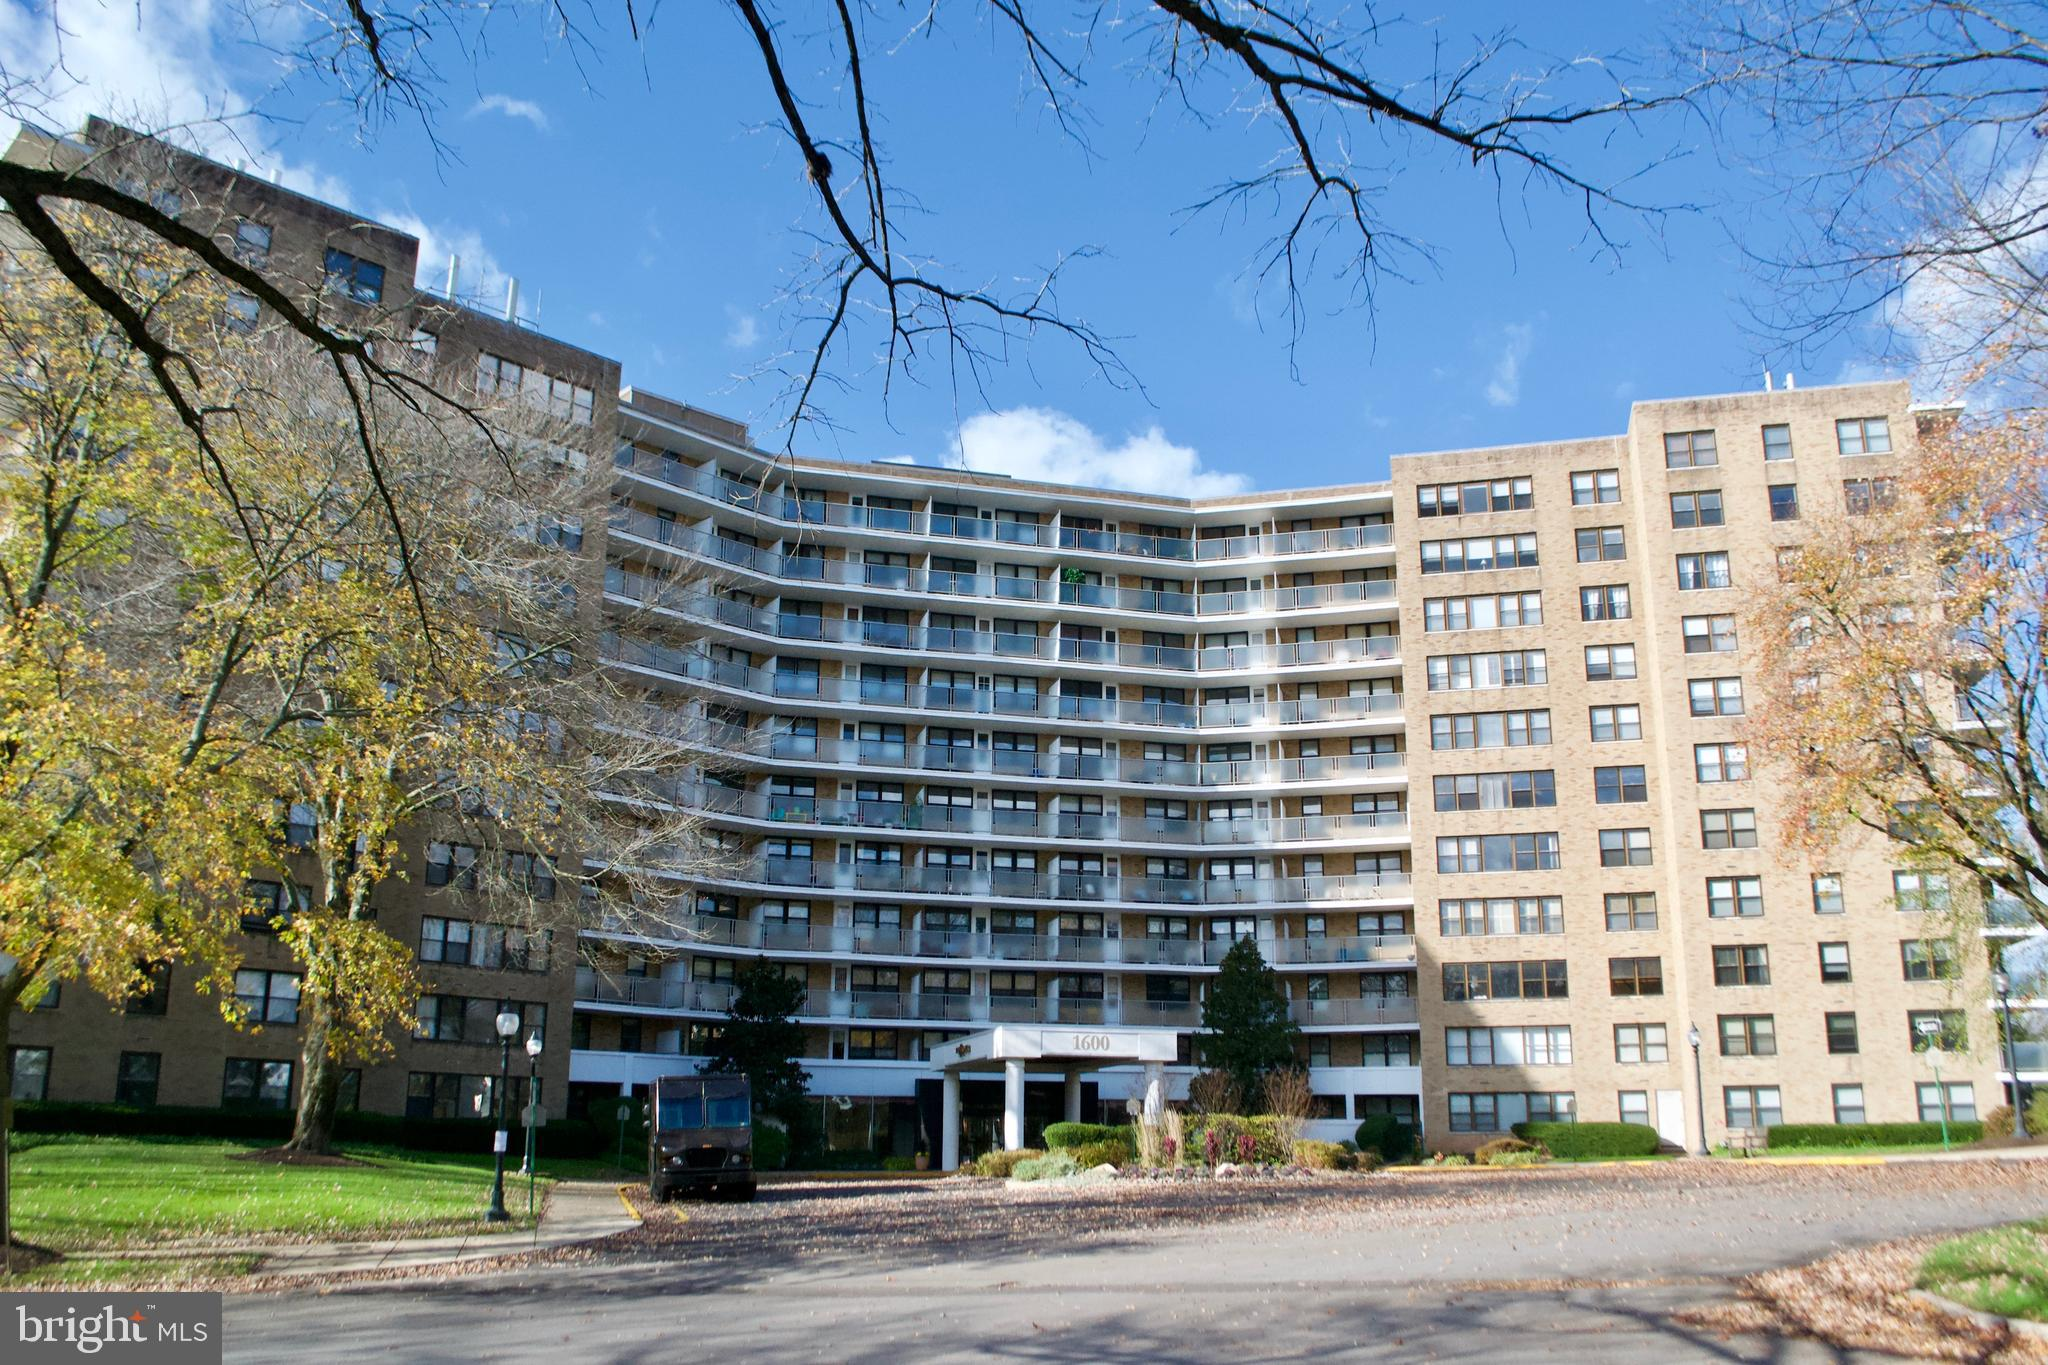 Great opportunity to own a condo at tower oak hill. The unit offers 2 bedrooms with a good size kitchen 1 bath  and a balcony with a beautiful view . There are lots of amenities gym , pool, play ground and 24hr security, The only utility you pay is electric.